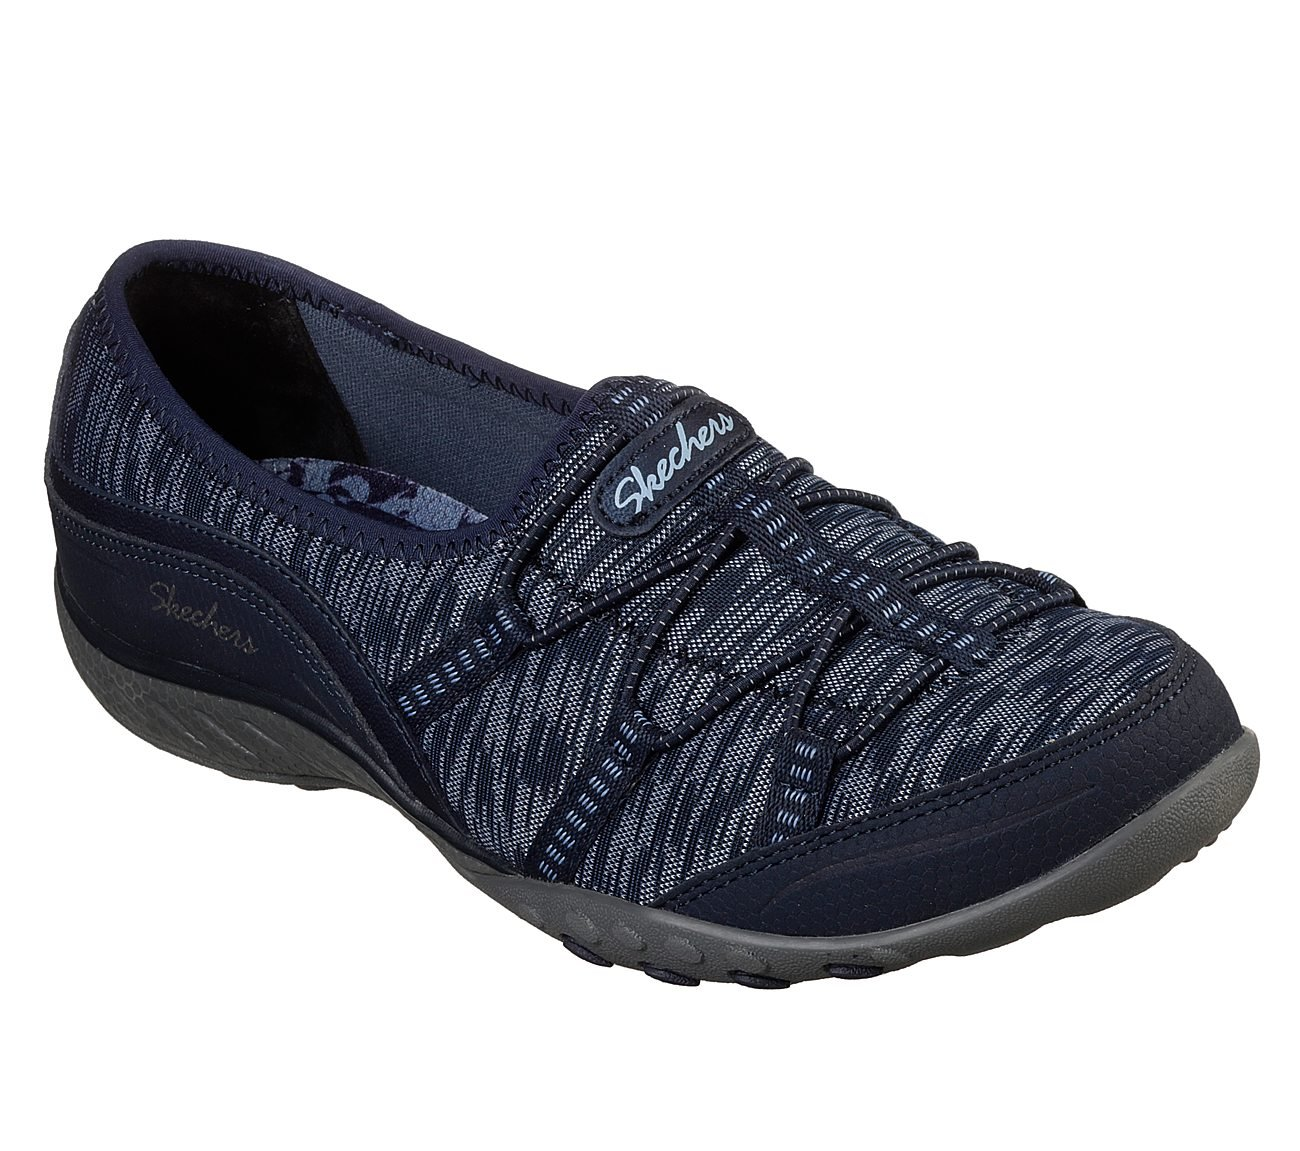 Skechers Womens Relaxed Fit: Breathe Easy Sneaker, Navy, Size 9 by Skechers (Image #1)